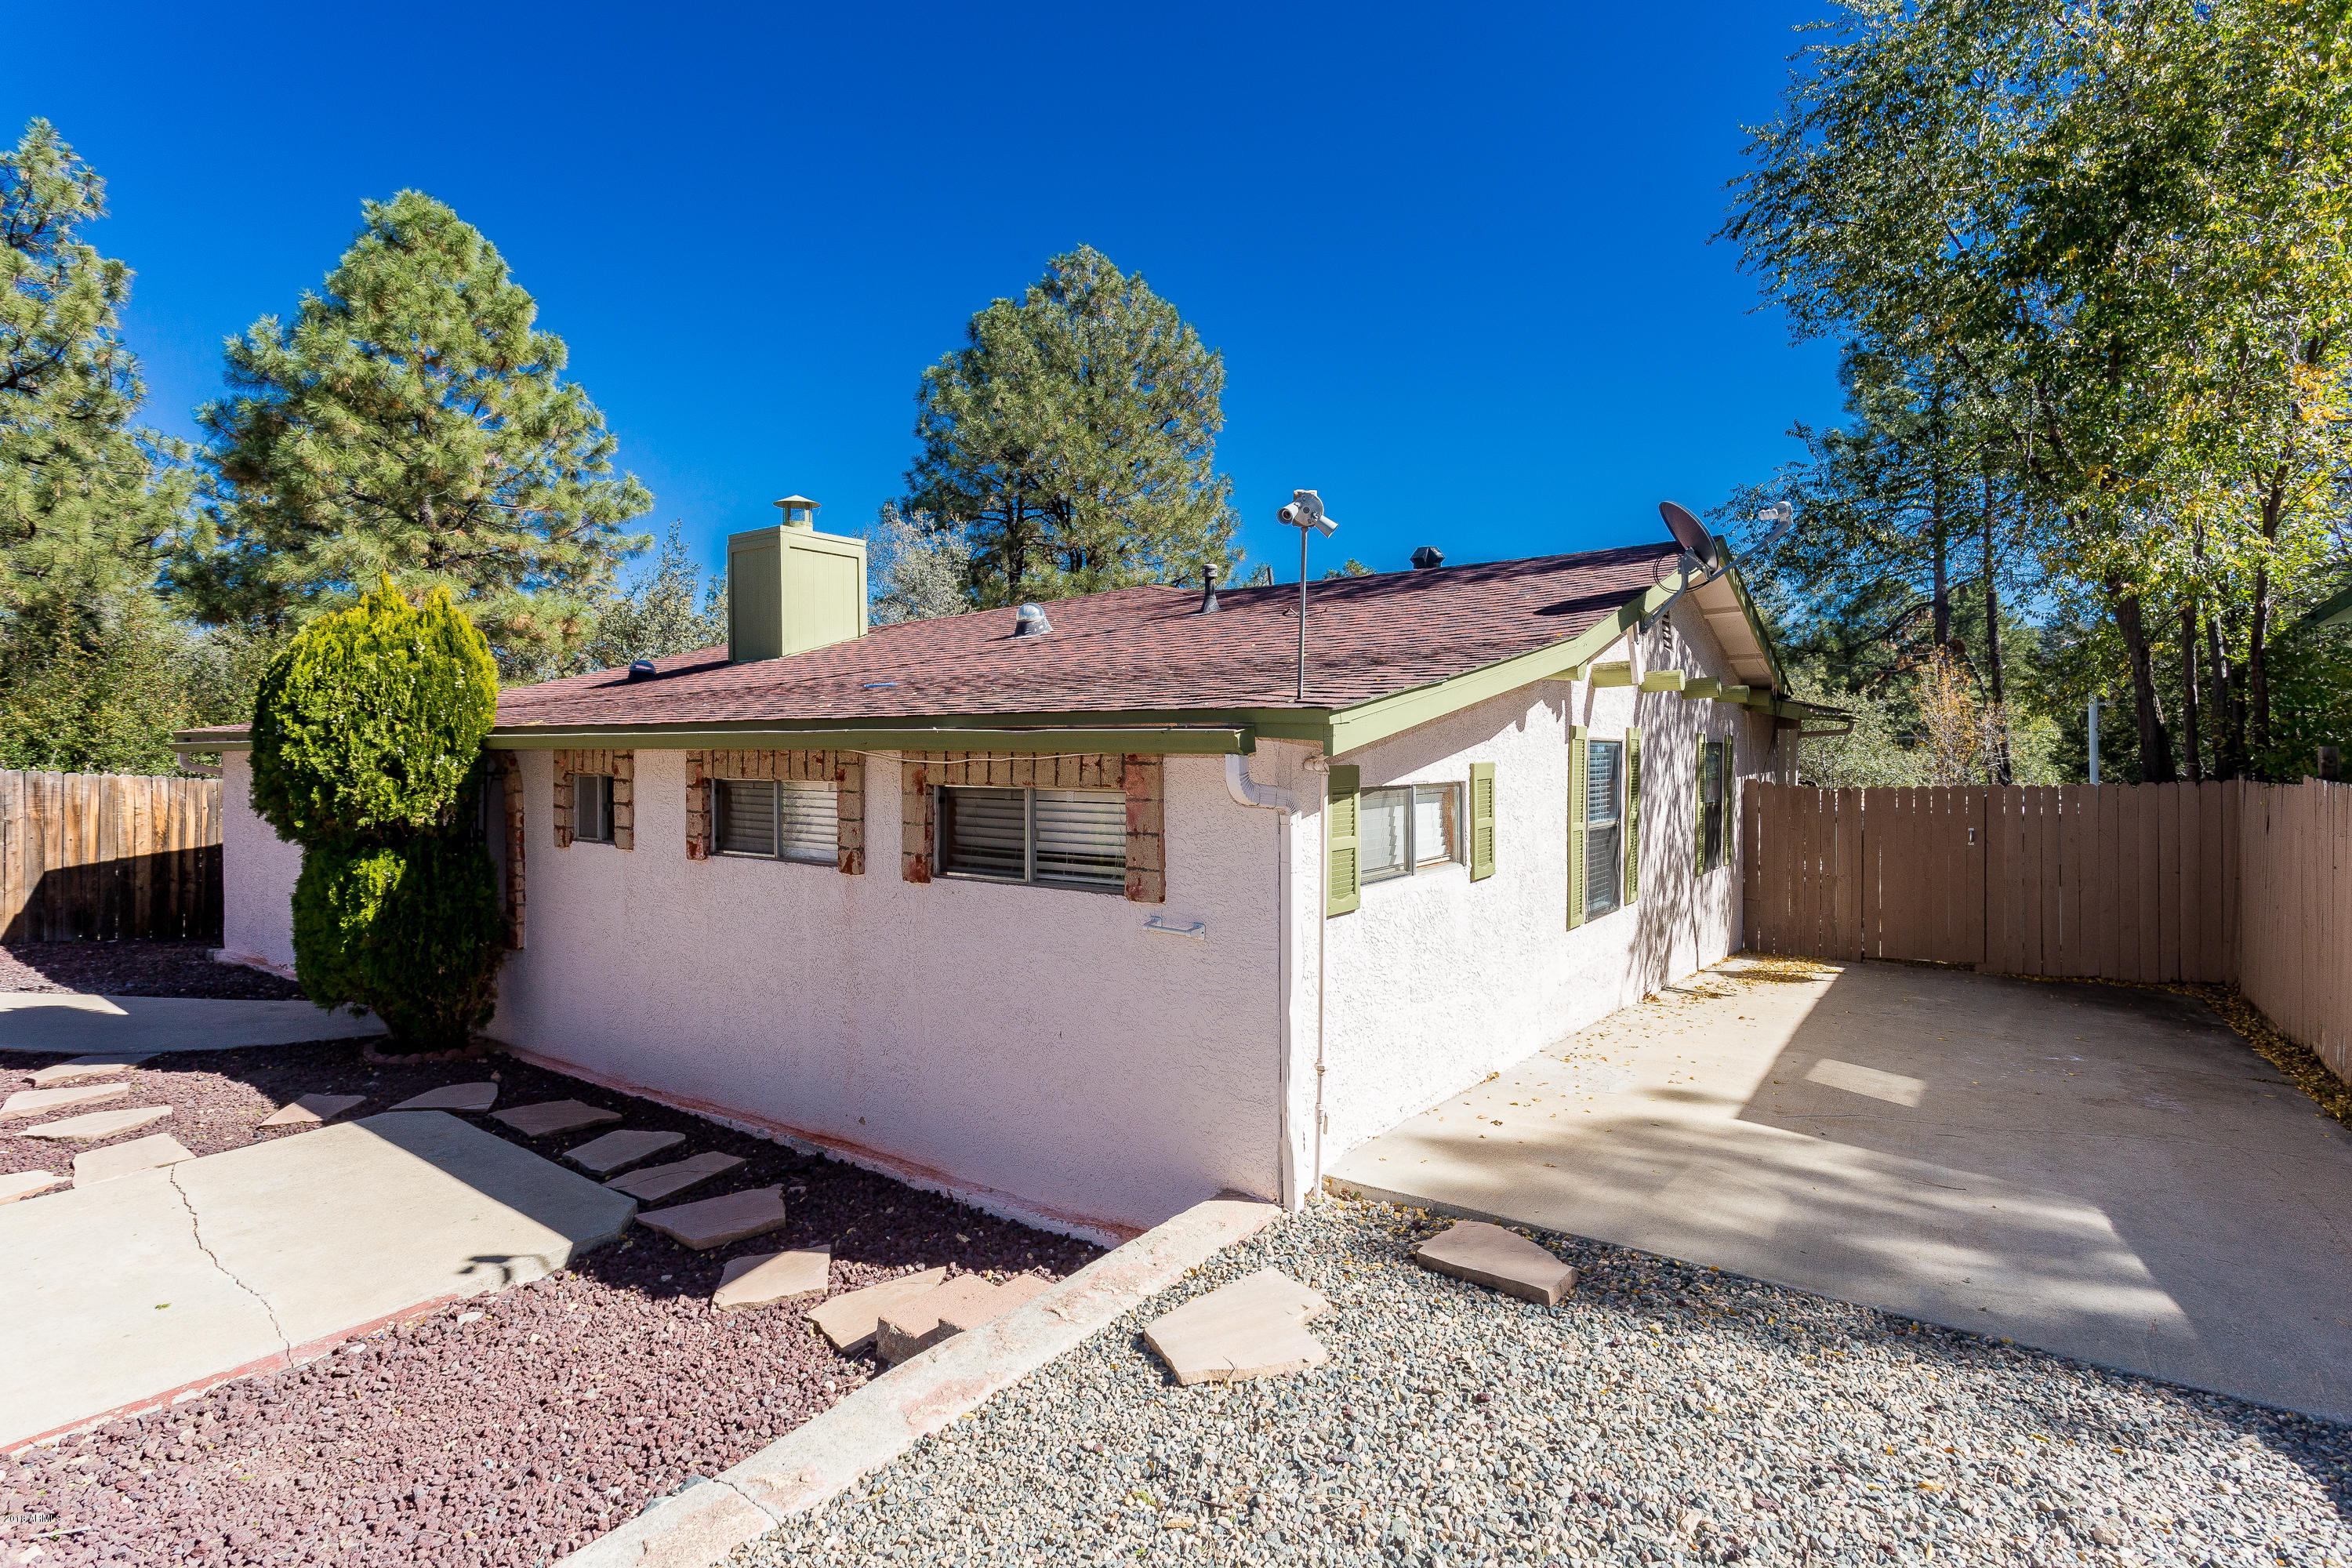 MLS 5843354 625 TIBURON Drive, Prescott, AZ Prescott AZ Three Bedroom